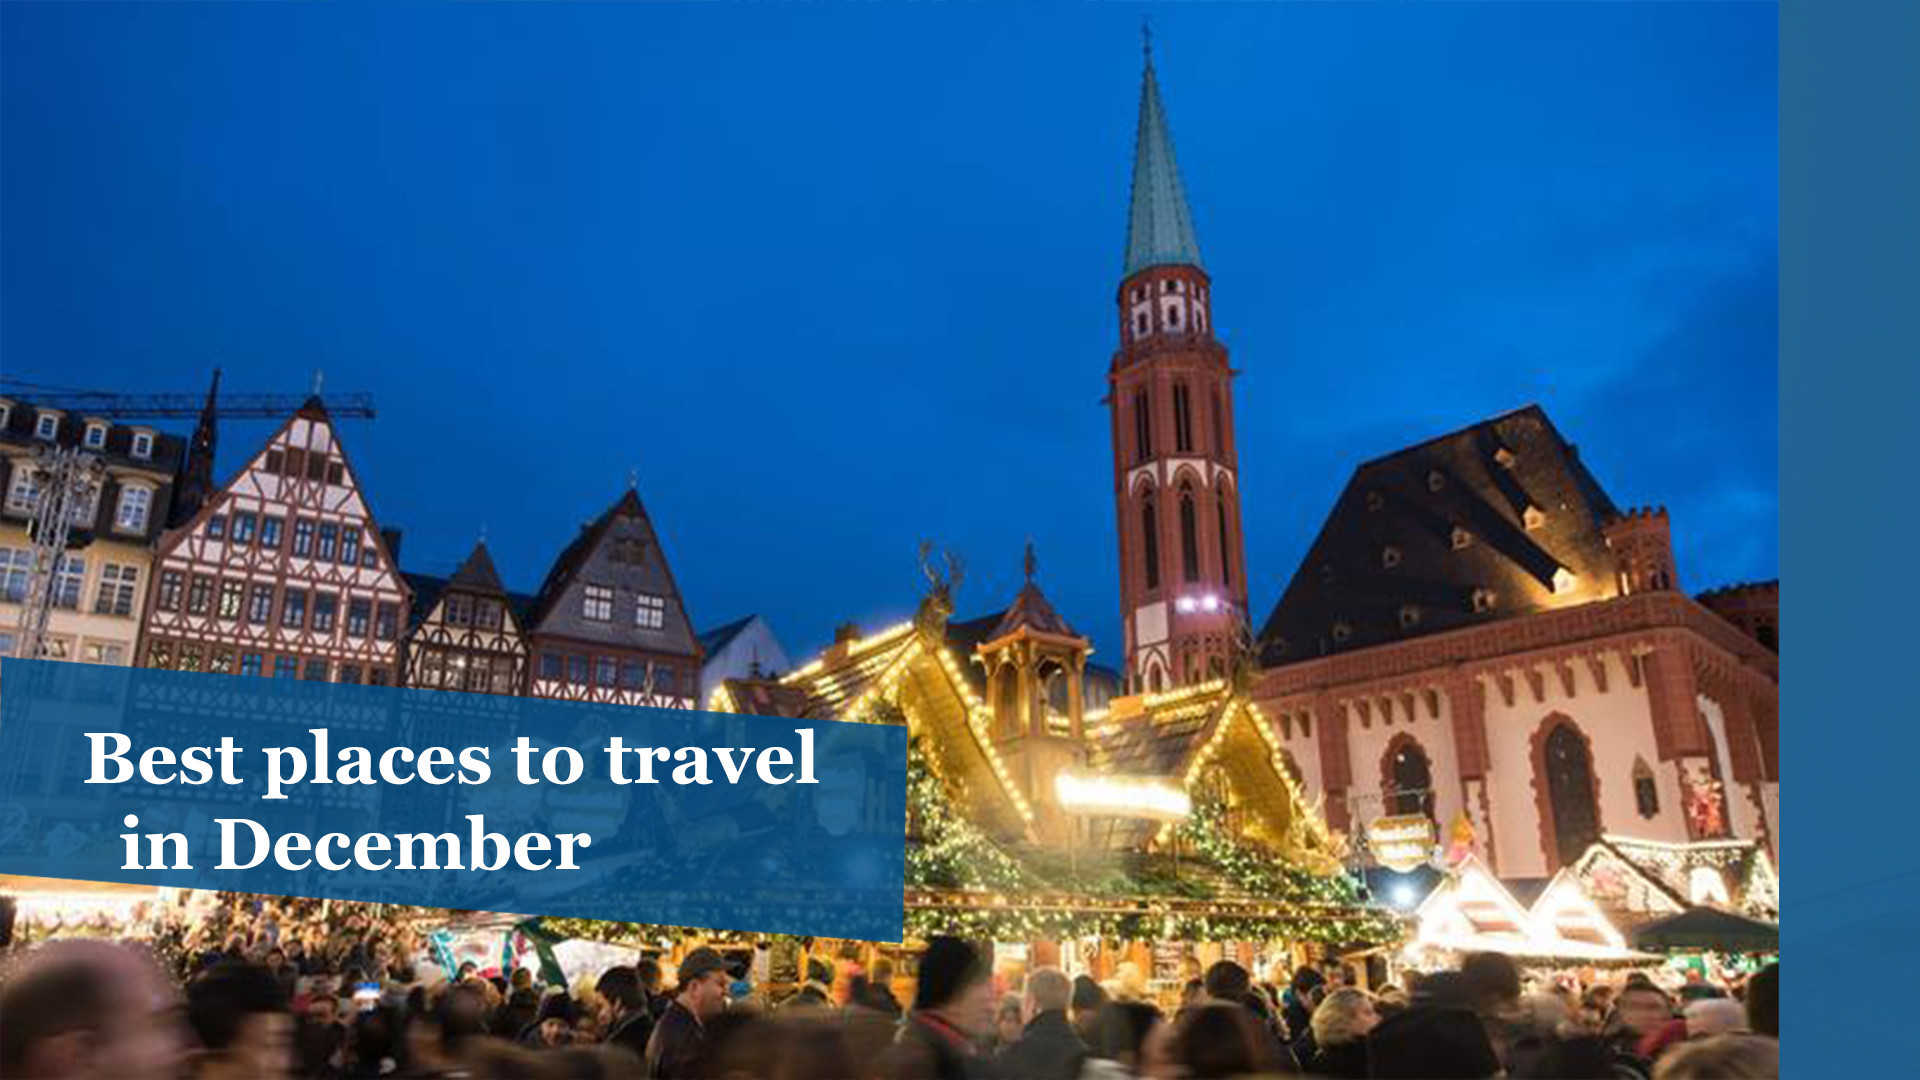 Best places to travel in December - Chicago Tribune